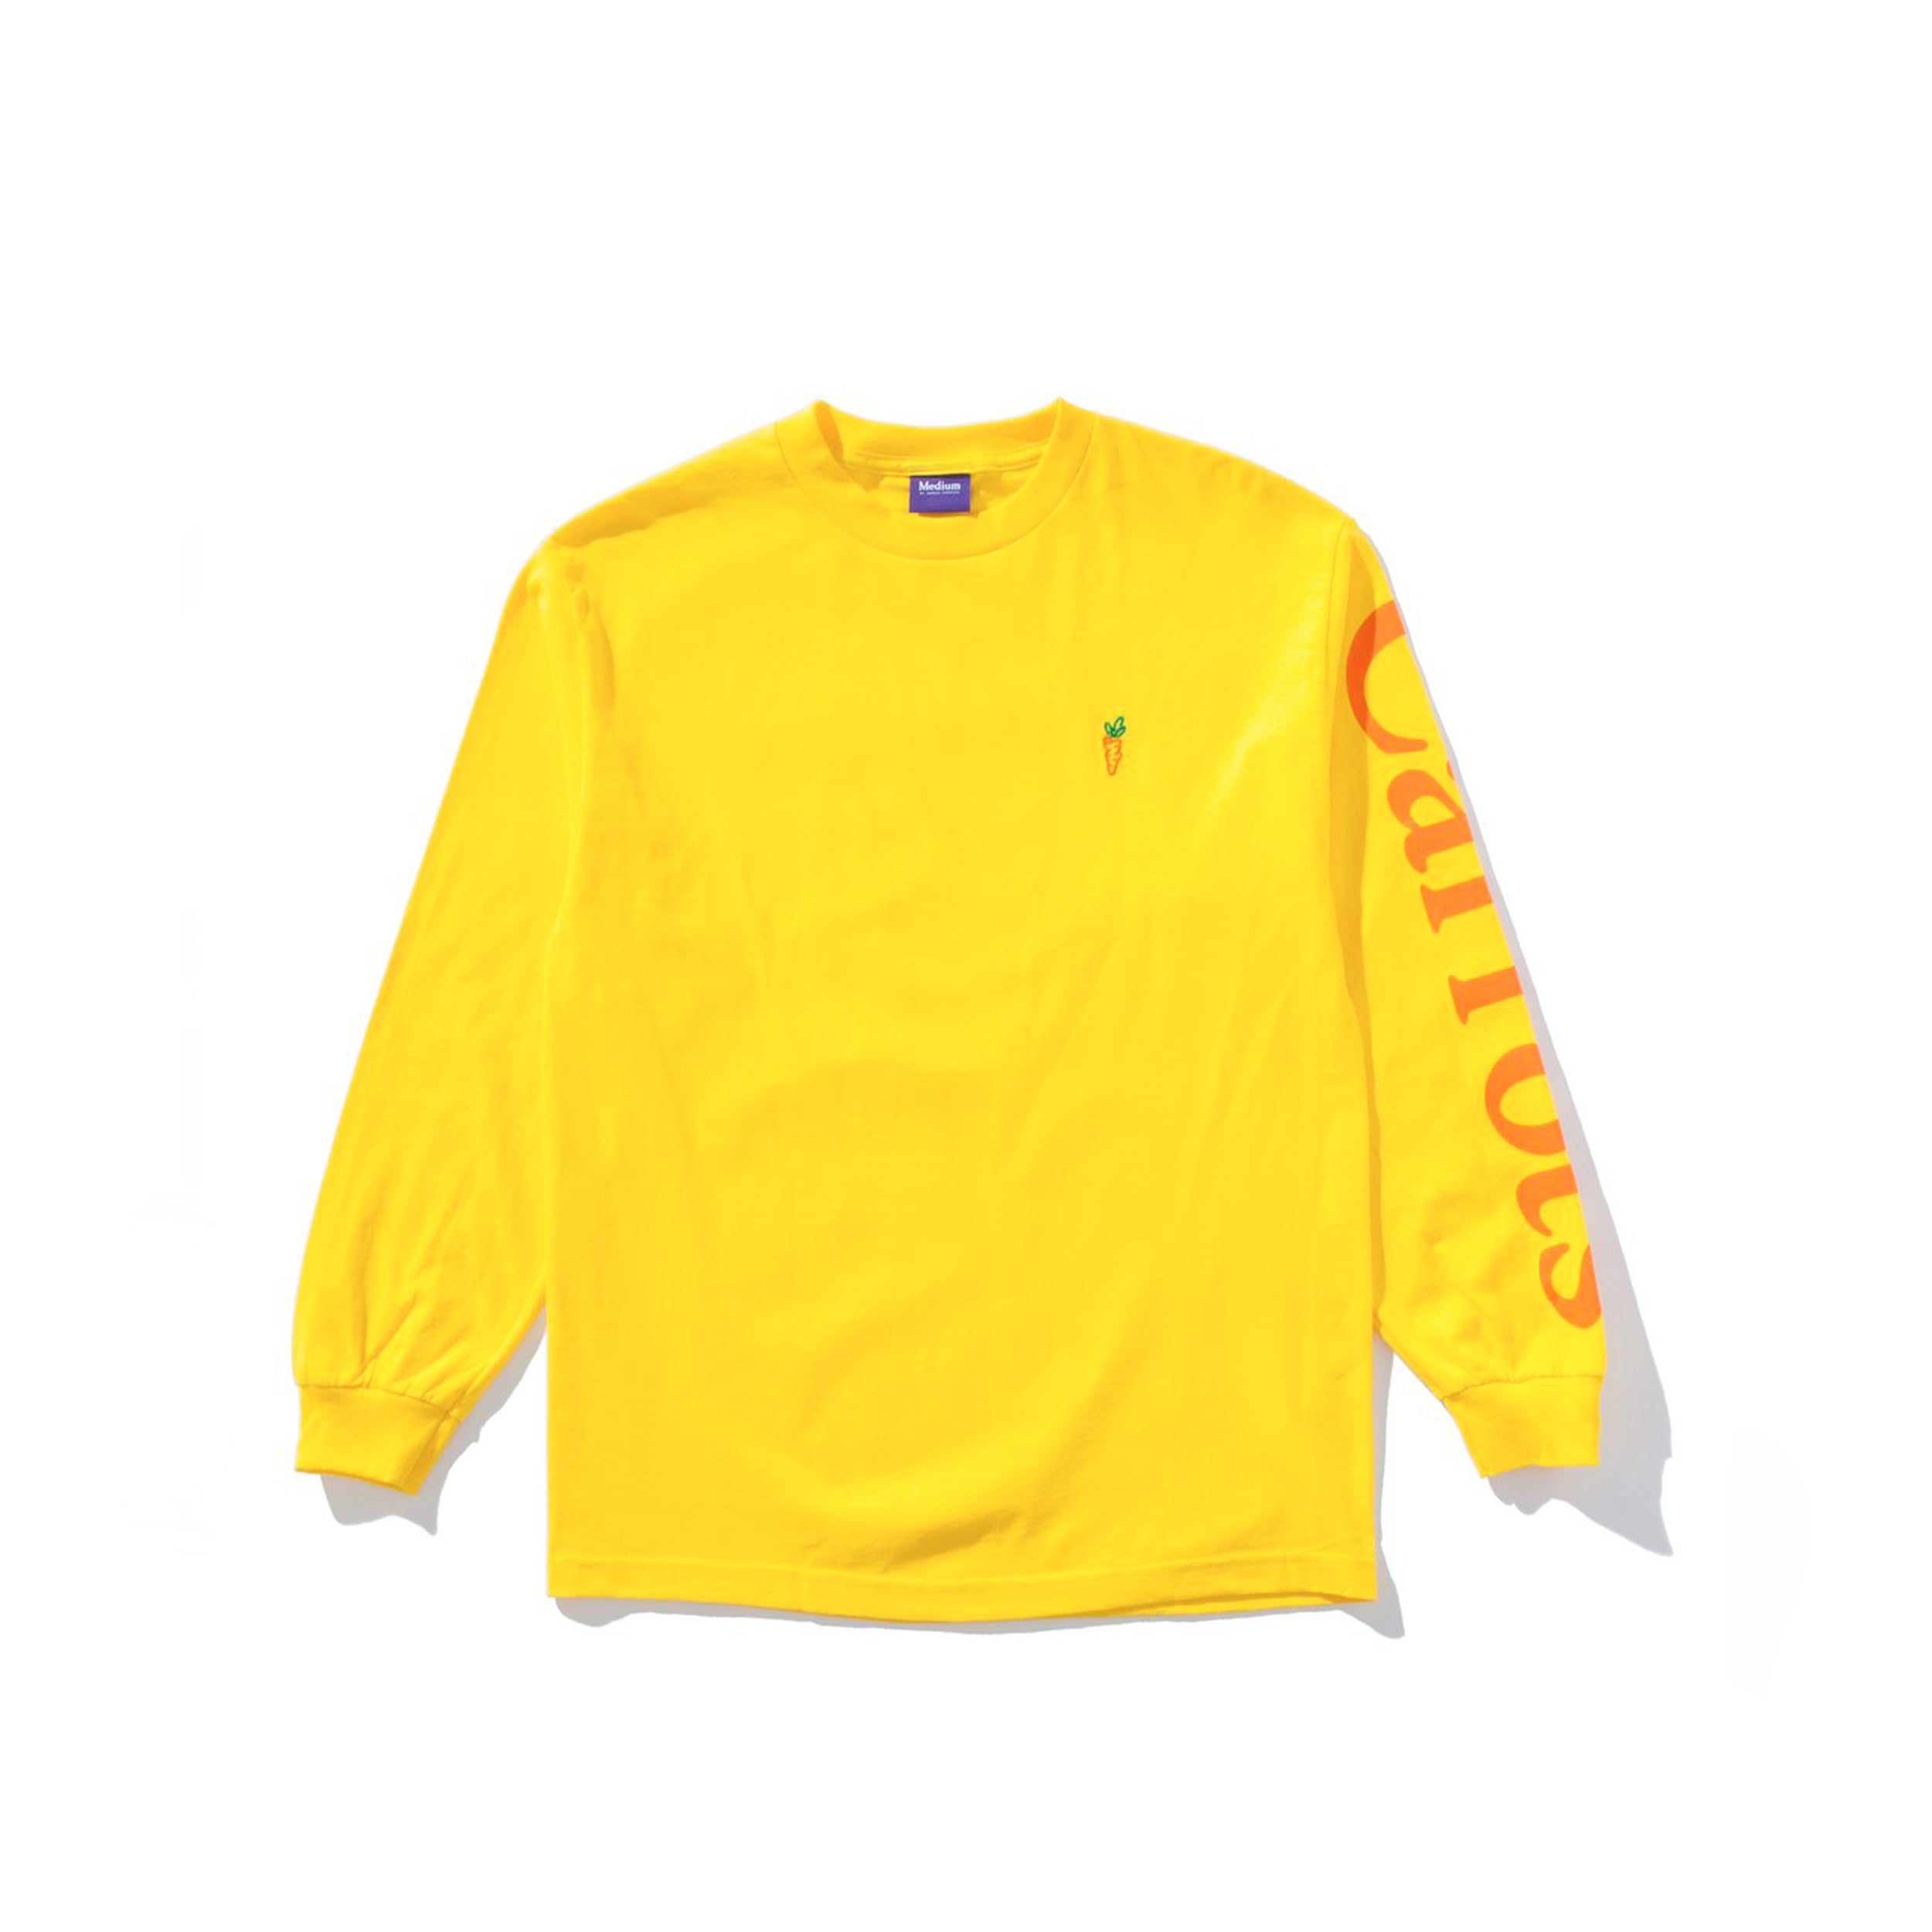 LOGO LONG SLEEVE YELLOW